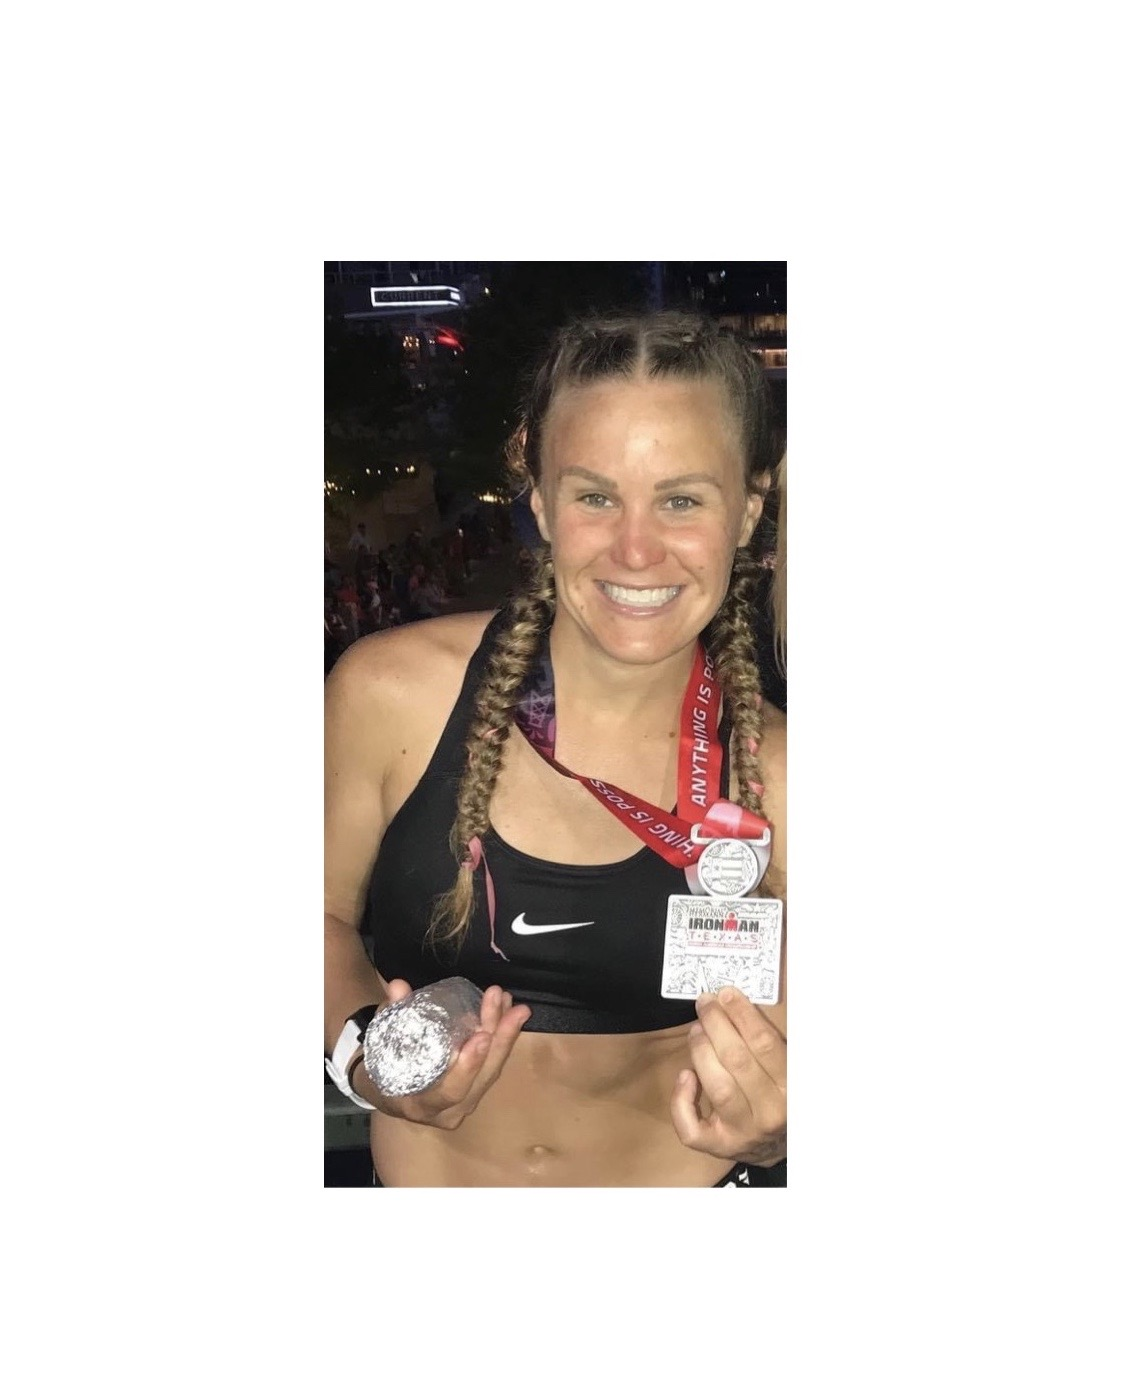 Conversation with Super Athlete Tammy Haws